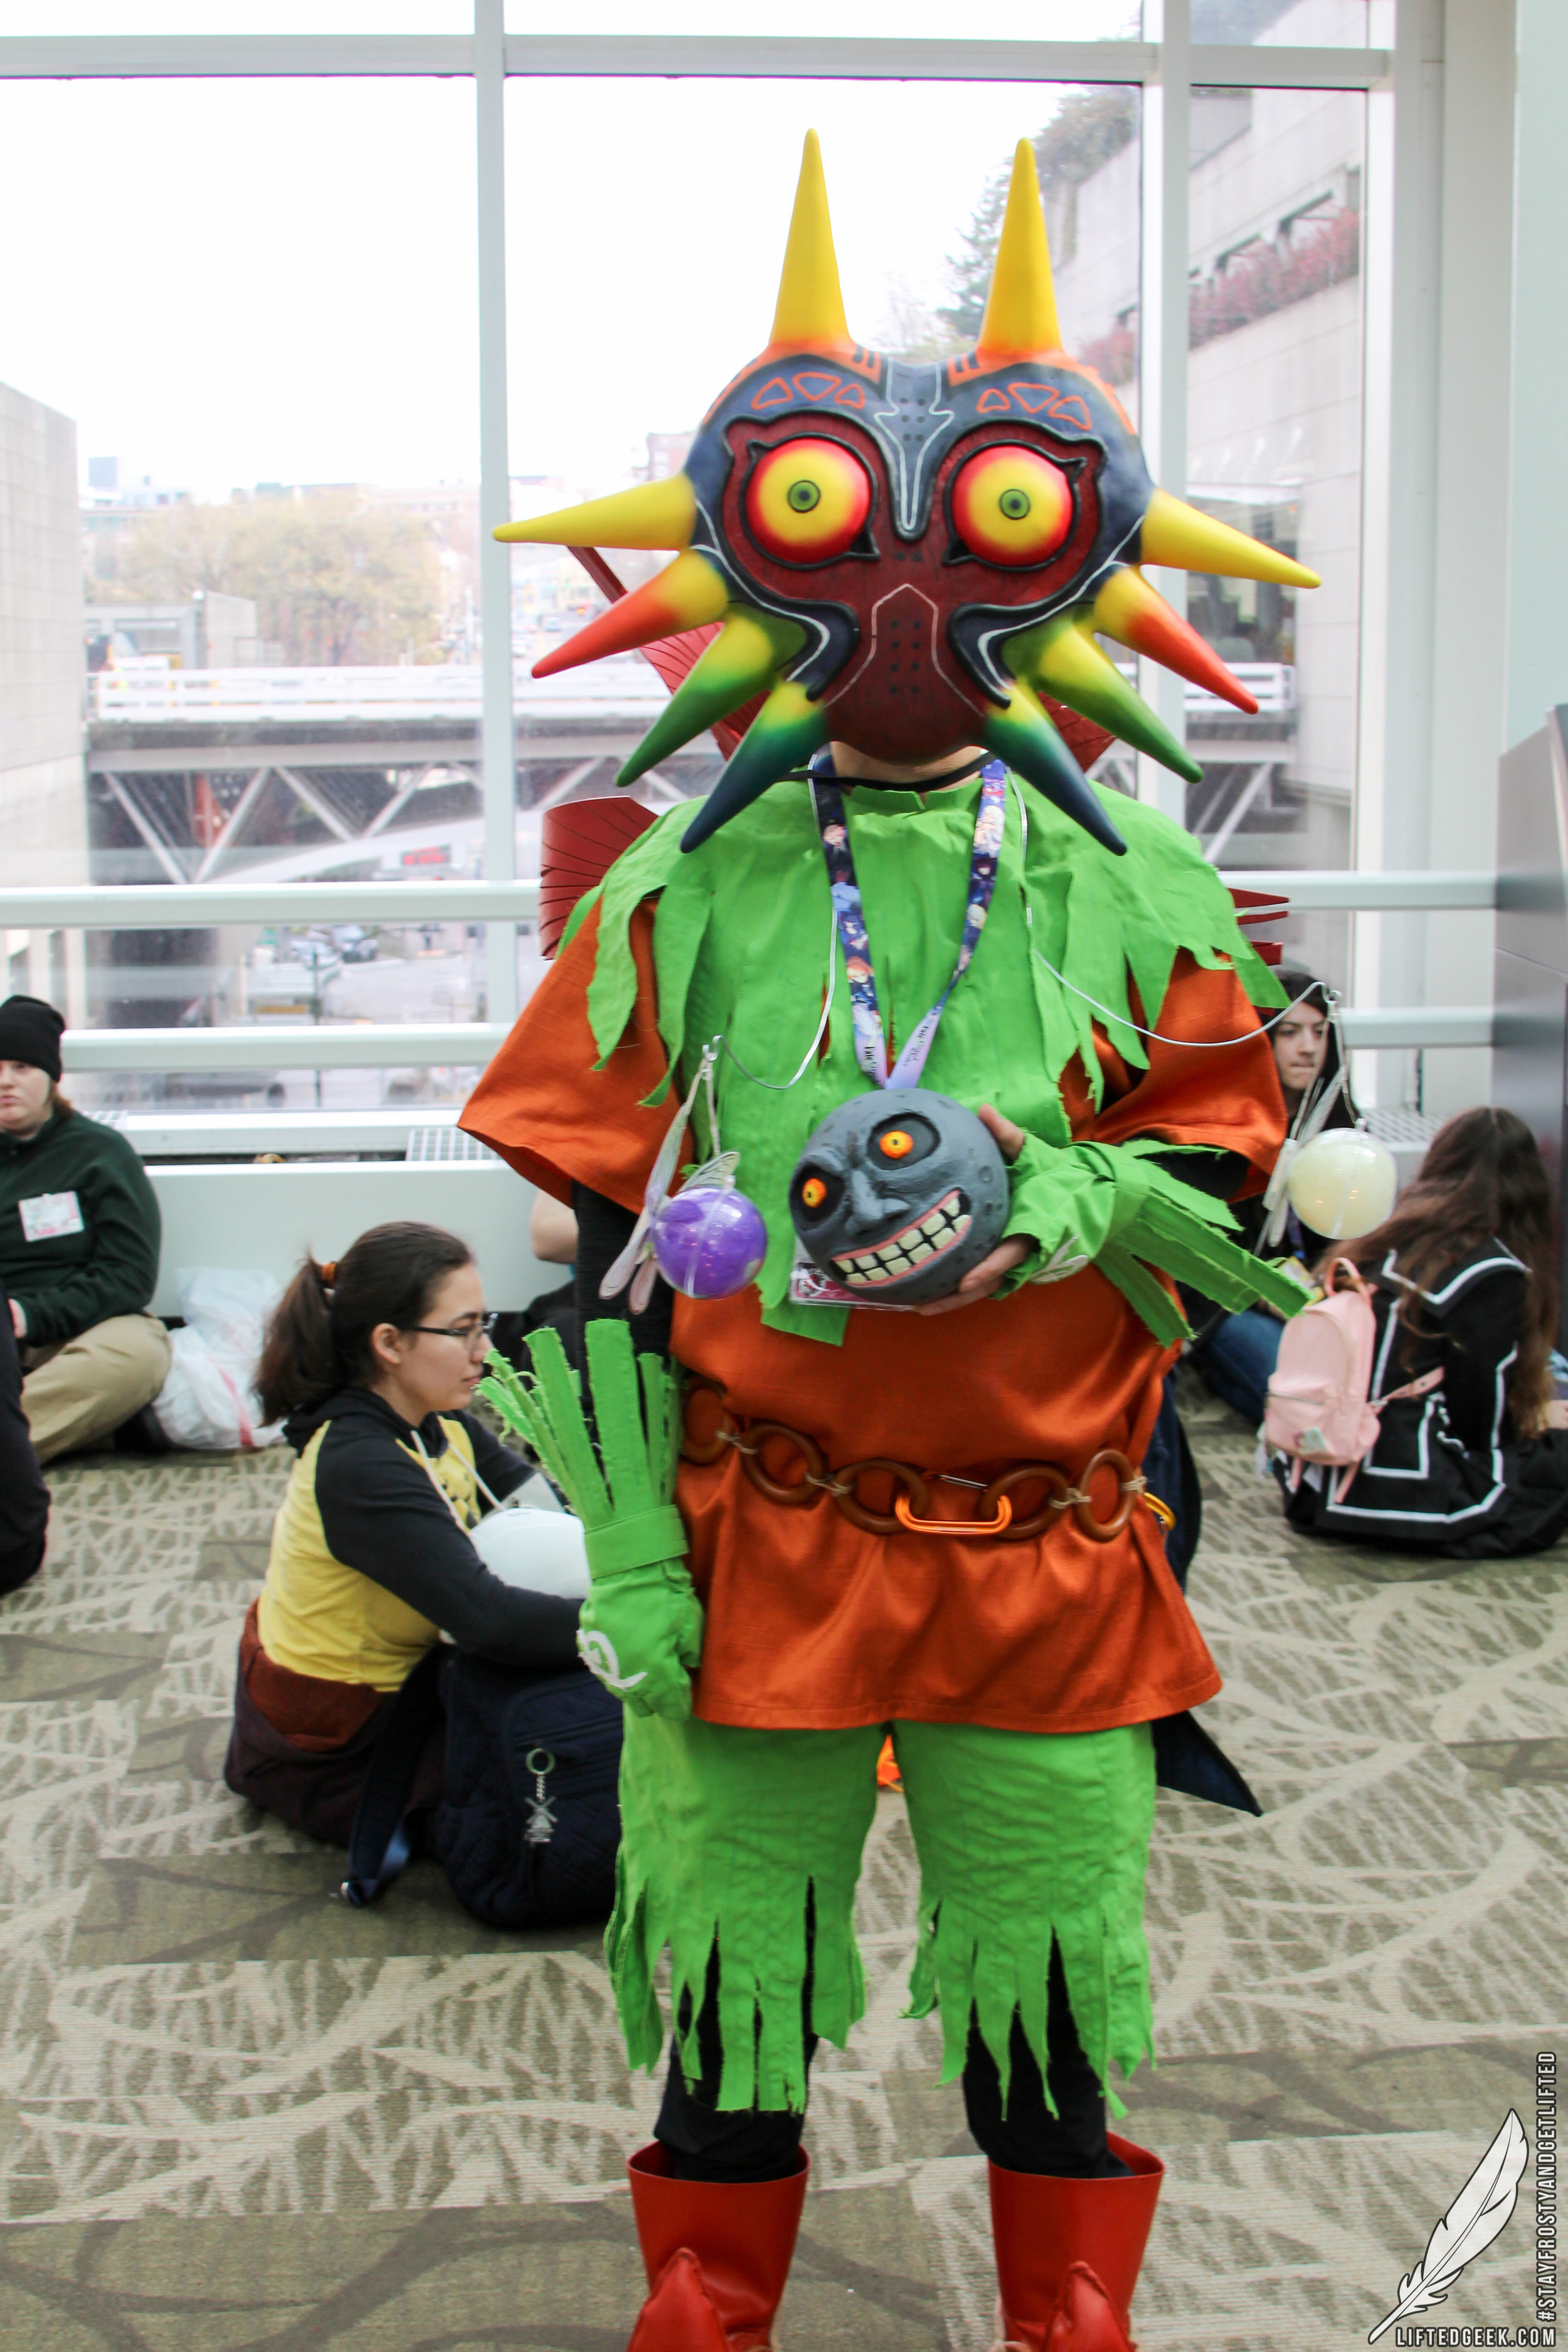 Sakuracon-cosplay-105.jpg